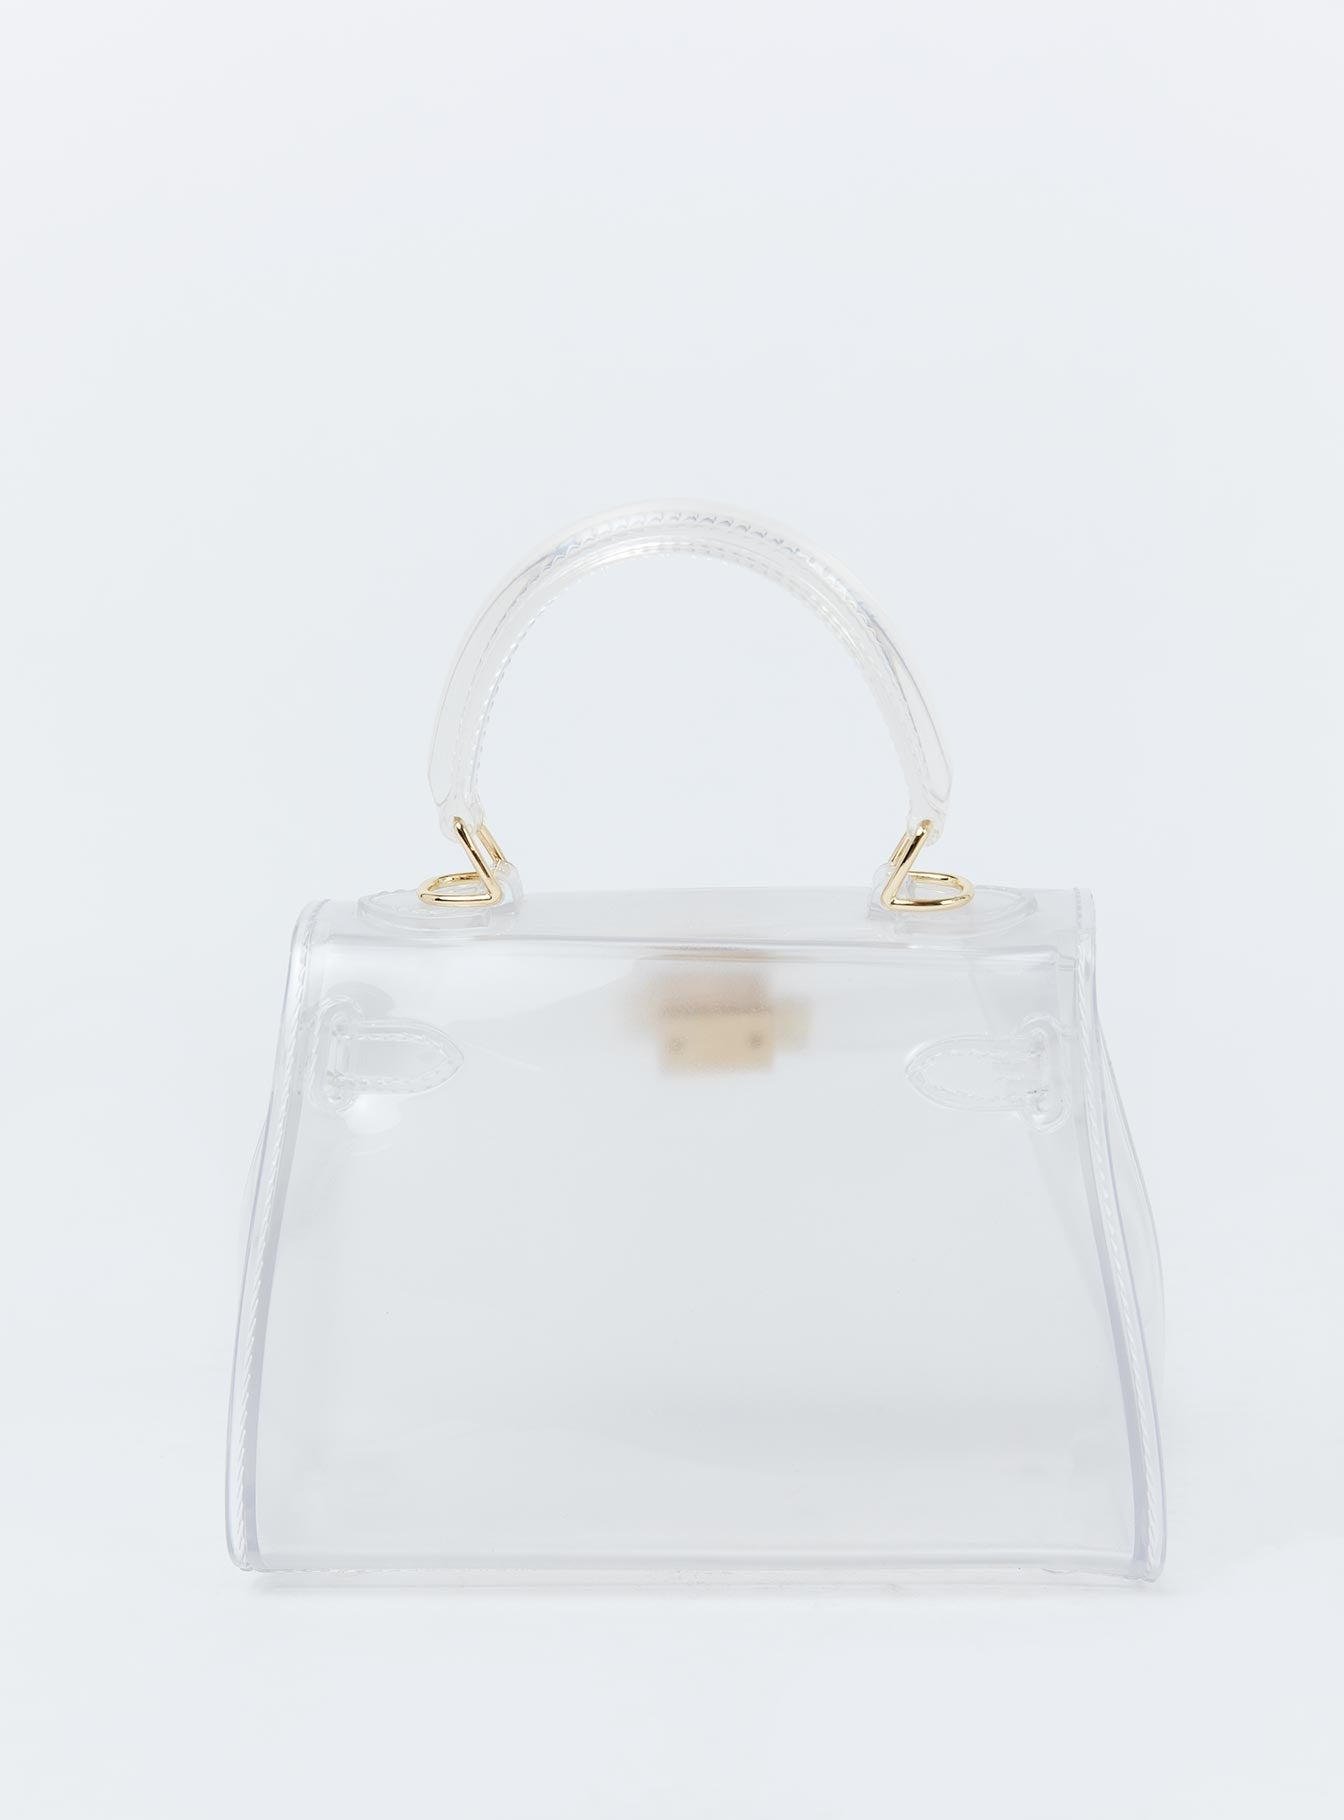 Peta & Jain Hailey Transparent Top Handle Bag Clear